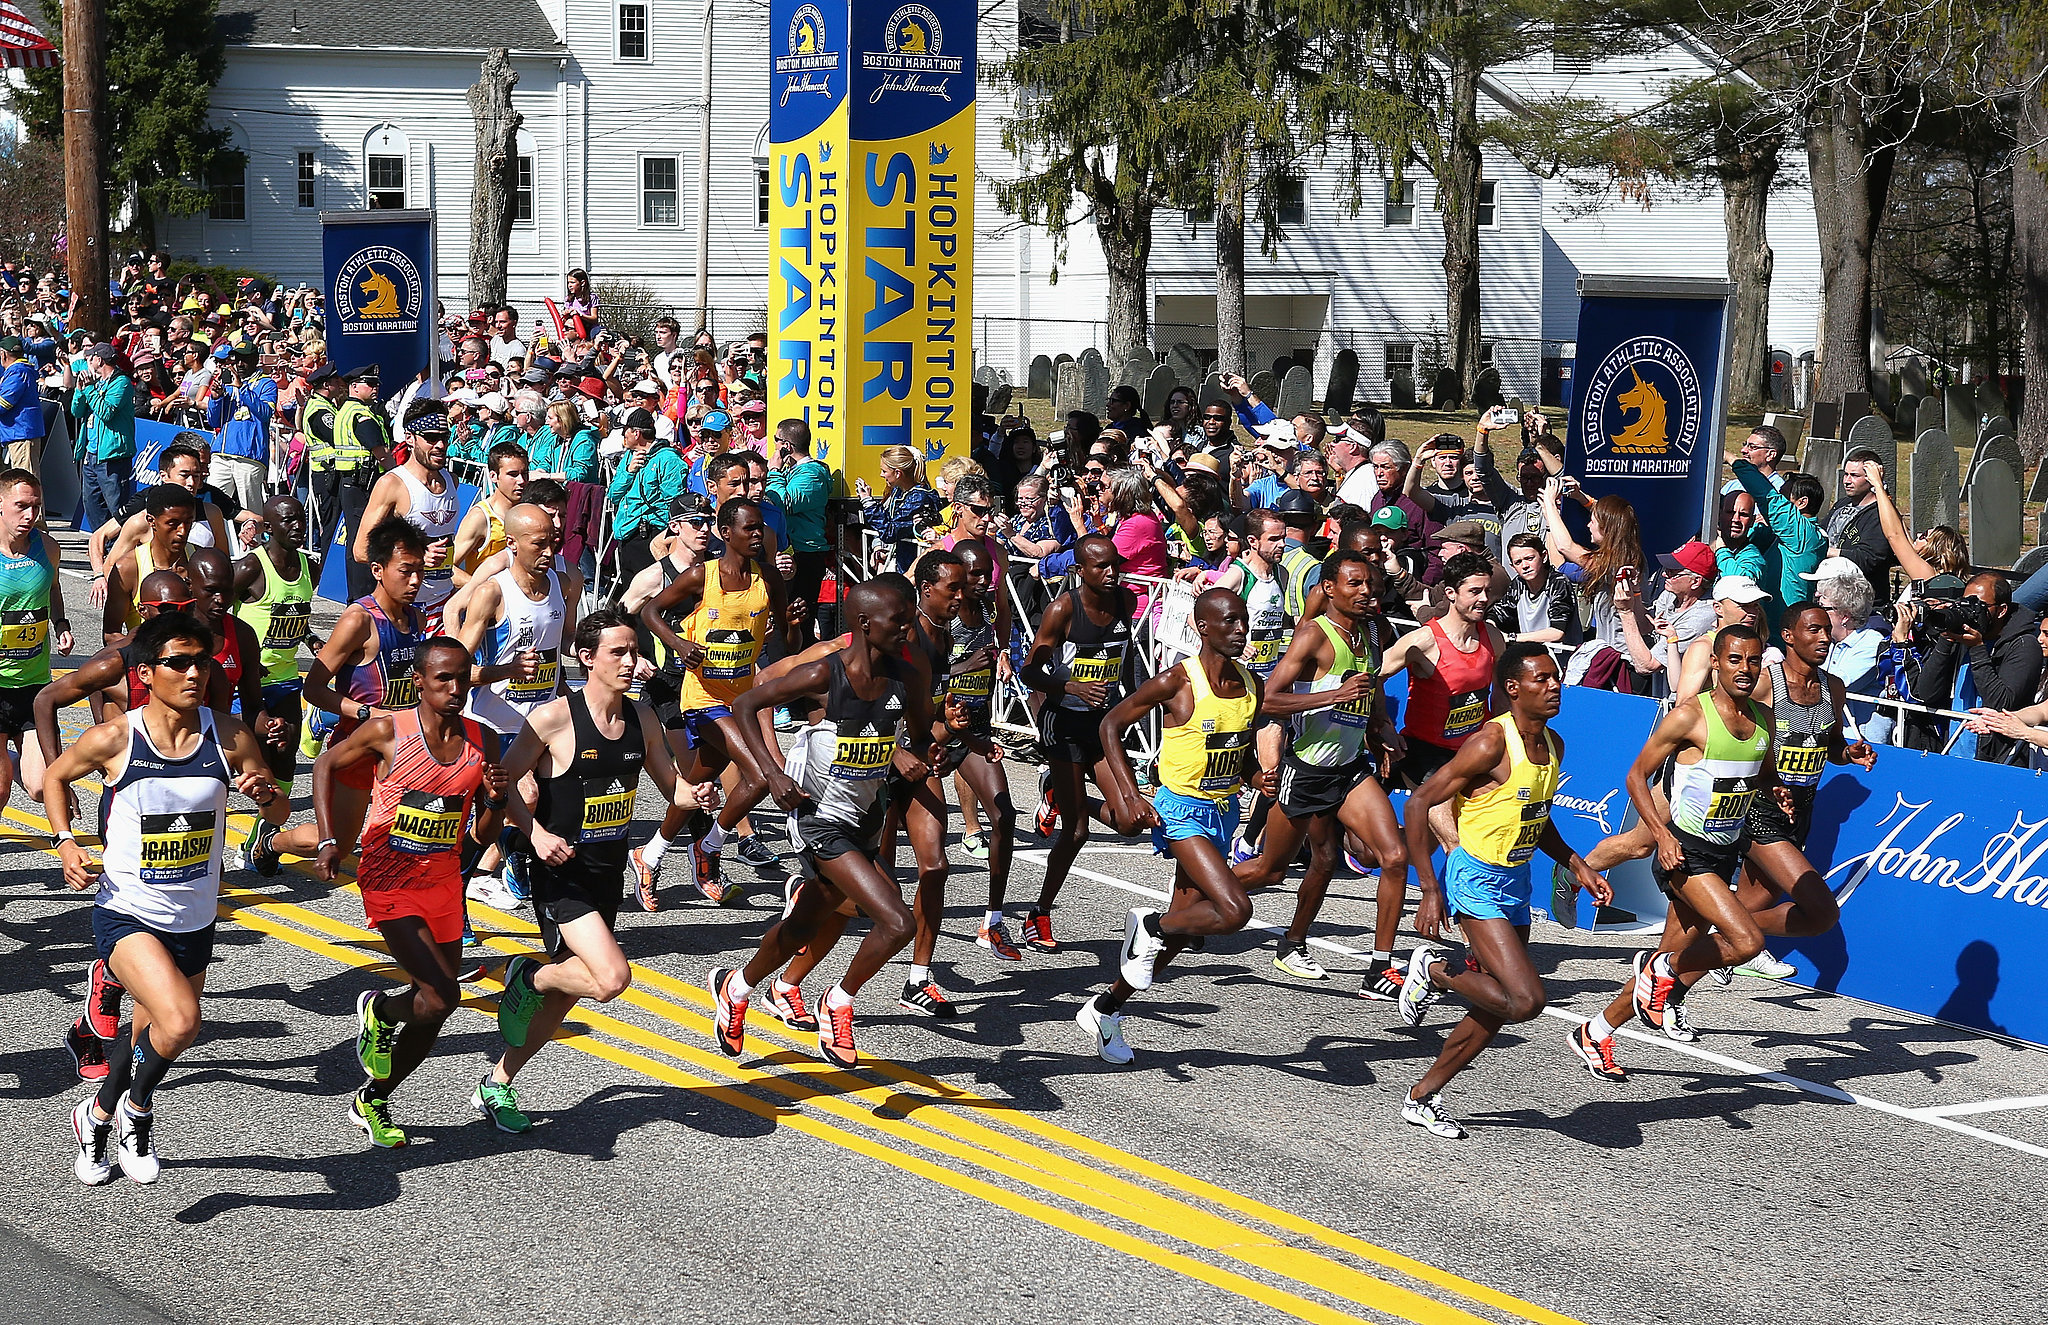 Congratulations to All the Winners of the Boston Marathon